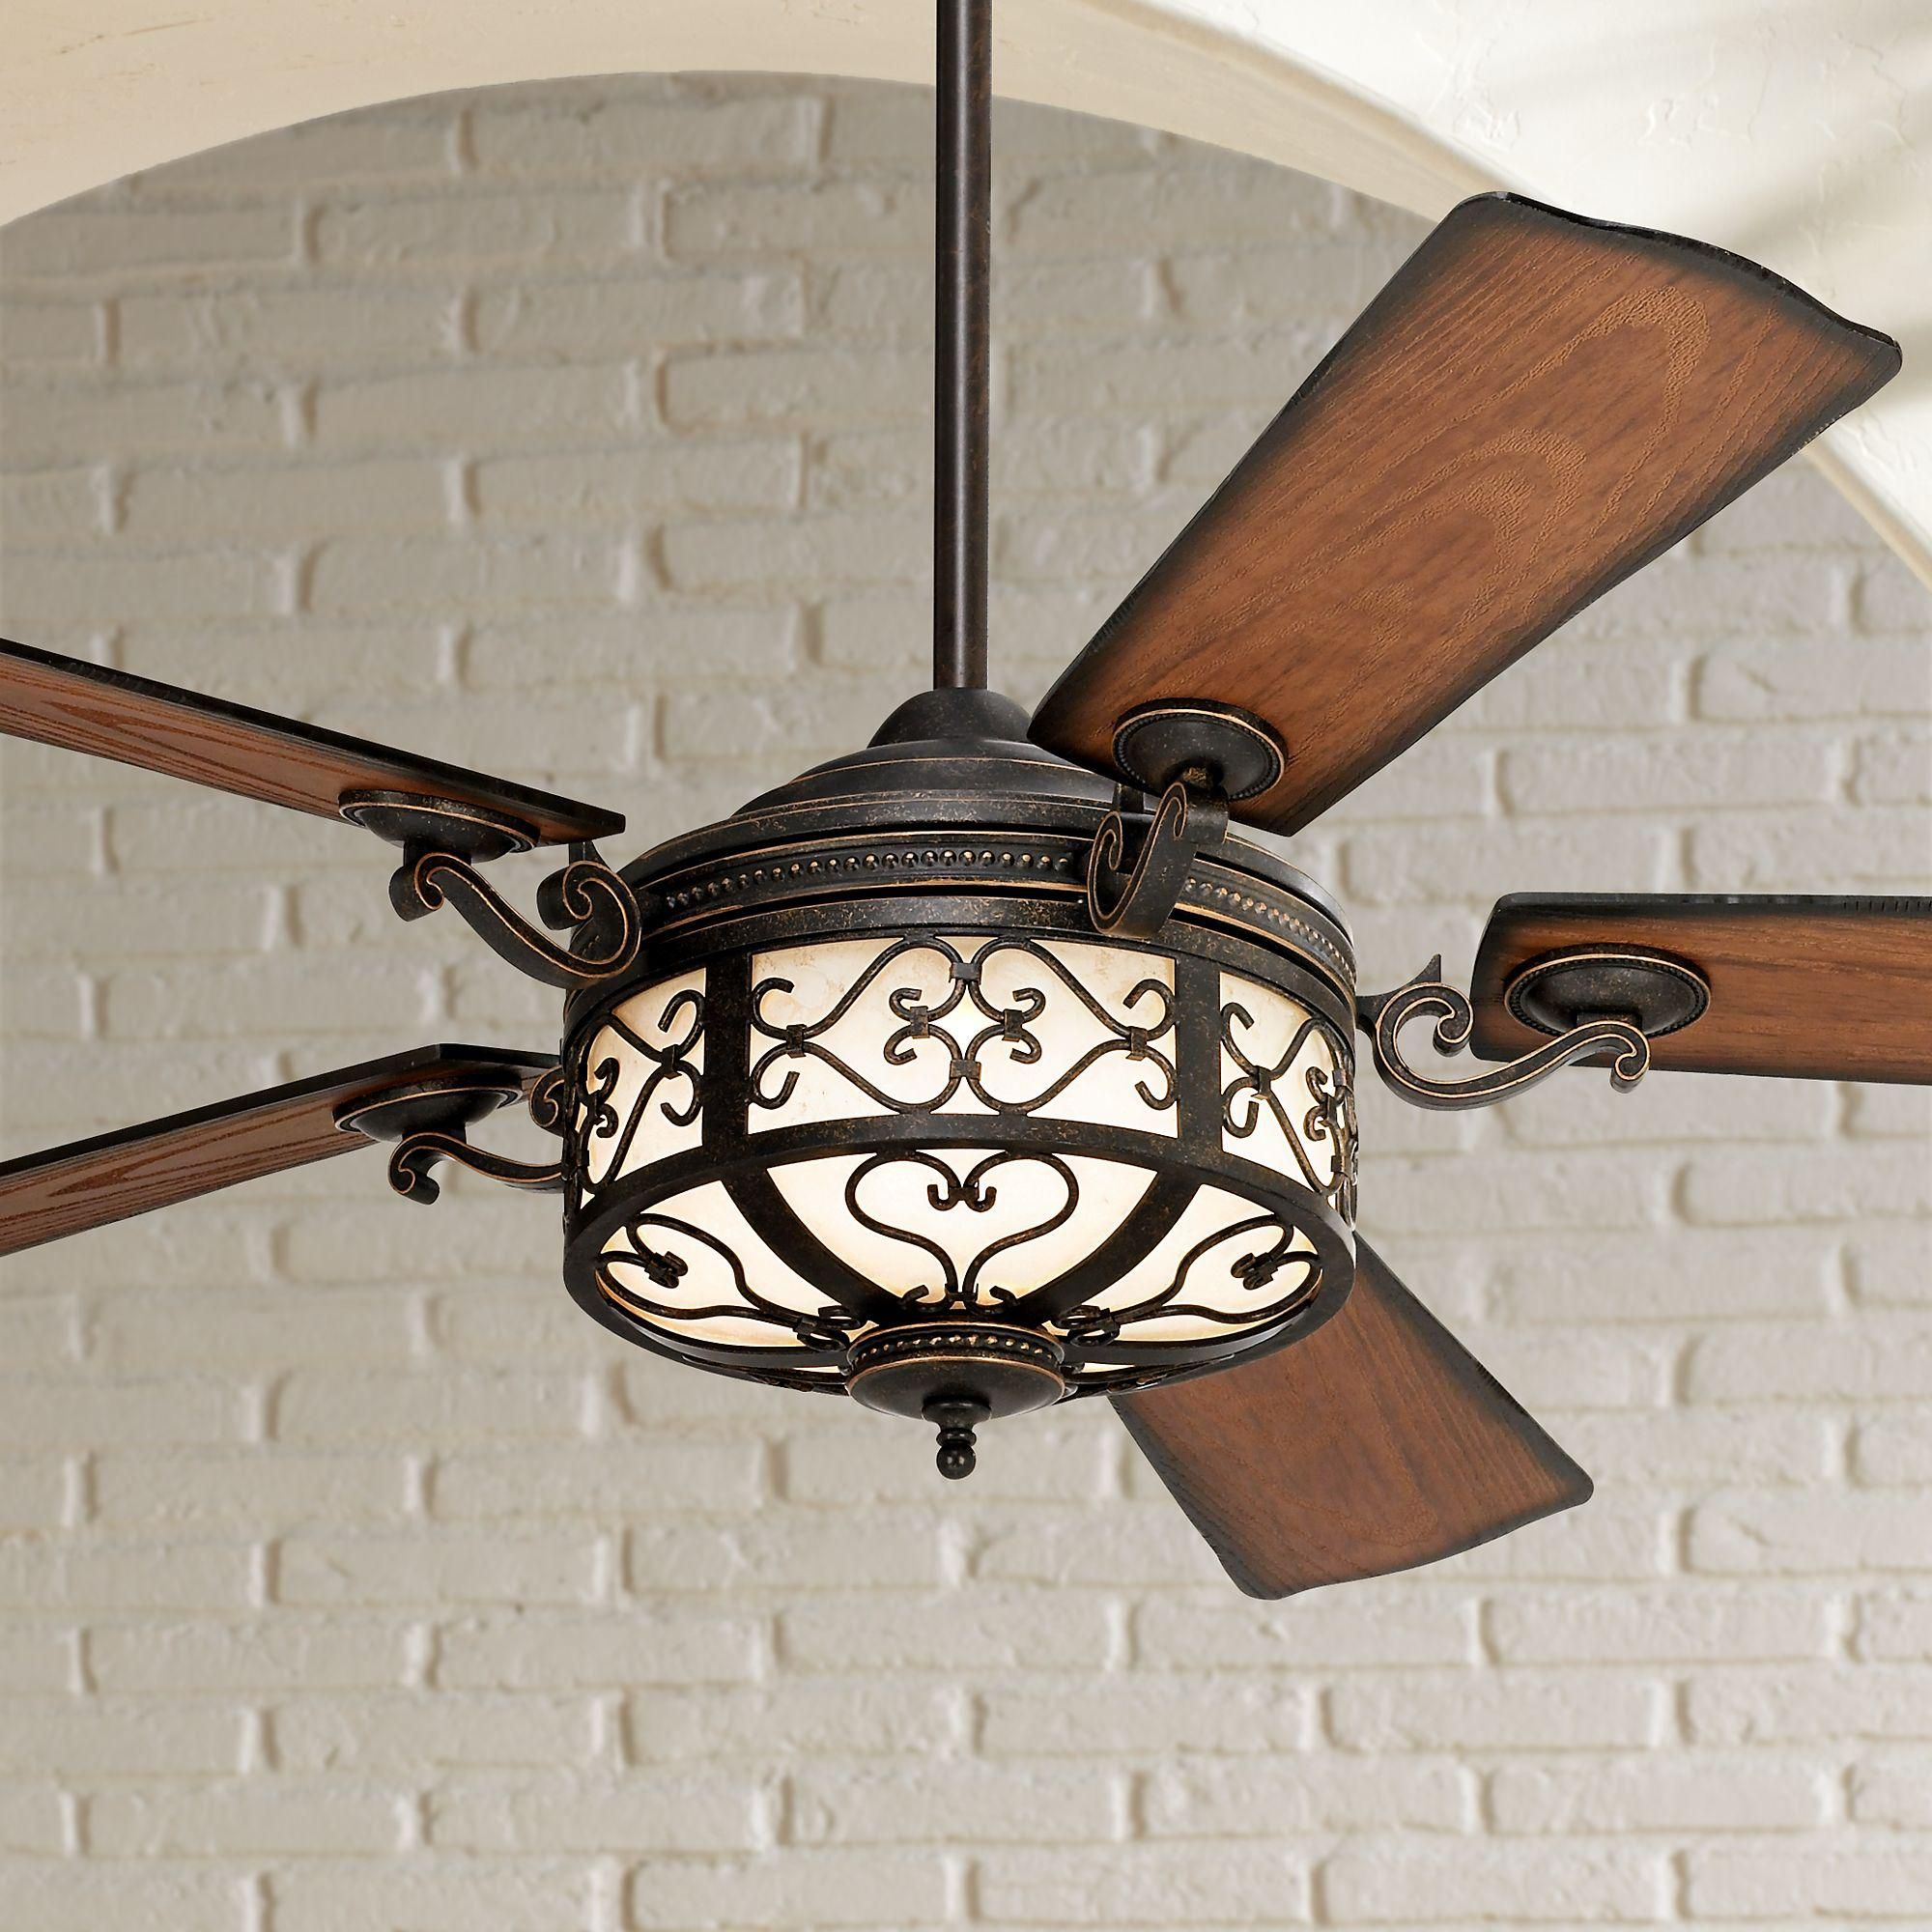 54 Inch Hermitage Led Golden Forged Outdoor Ceiling Fan Ceiling Fan Unique Ceiling Fans Outdoor Ceiling Fans